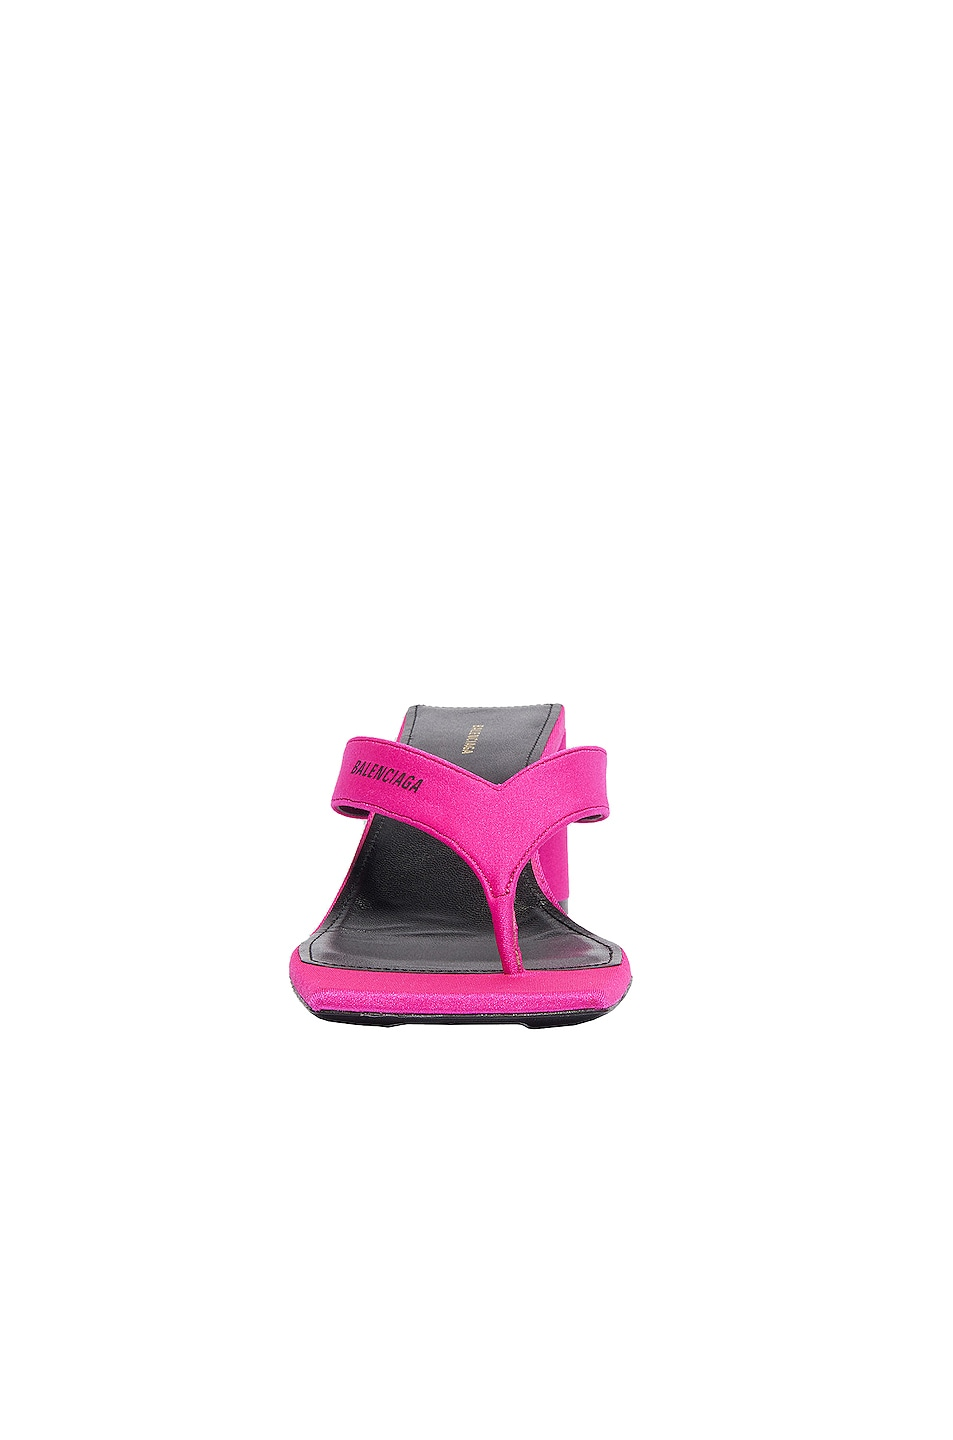 Image 2 of Balenciaga Logo Double Square Sandals in Lipstick Pink & Black